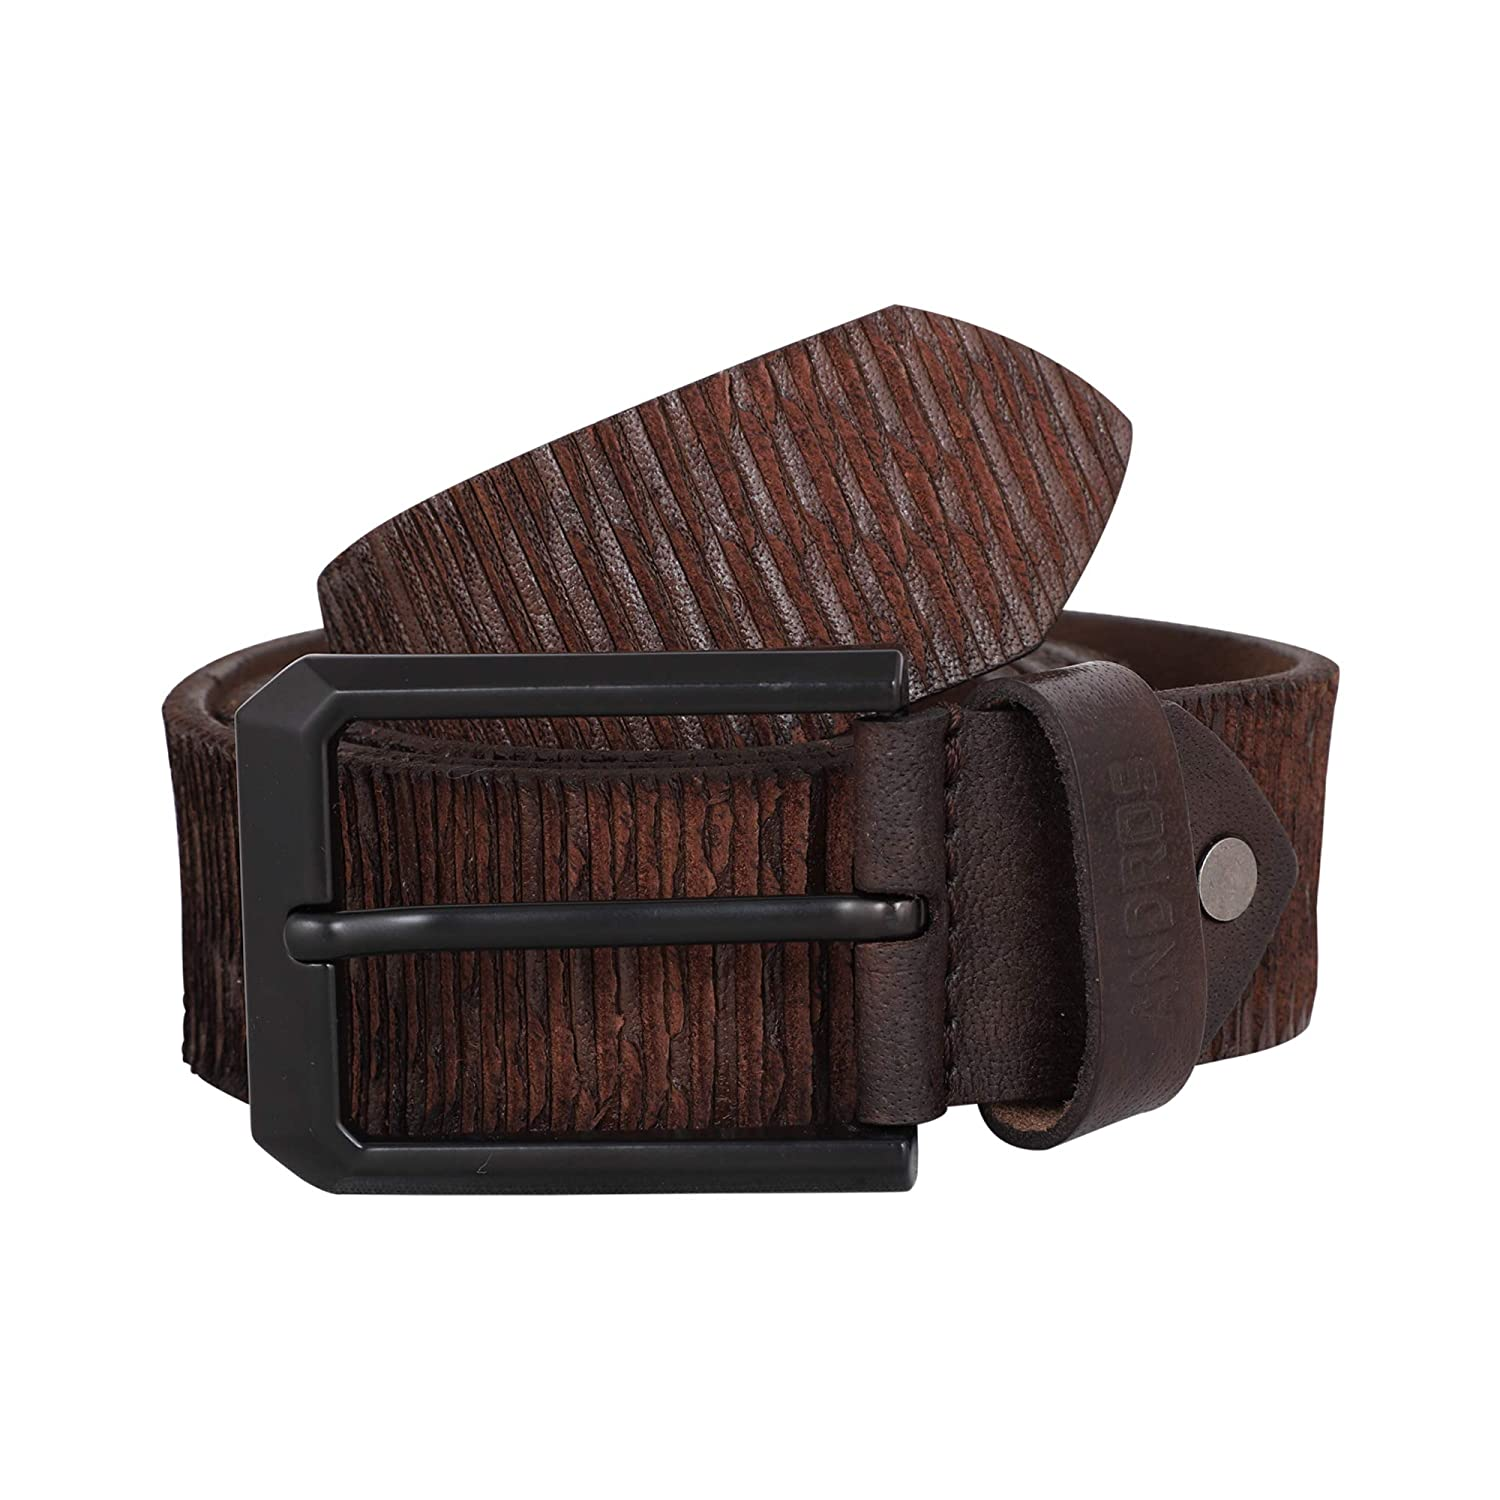 Andros Mens Casual Leather Belt